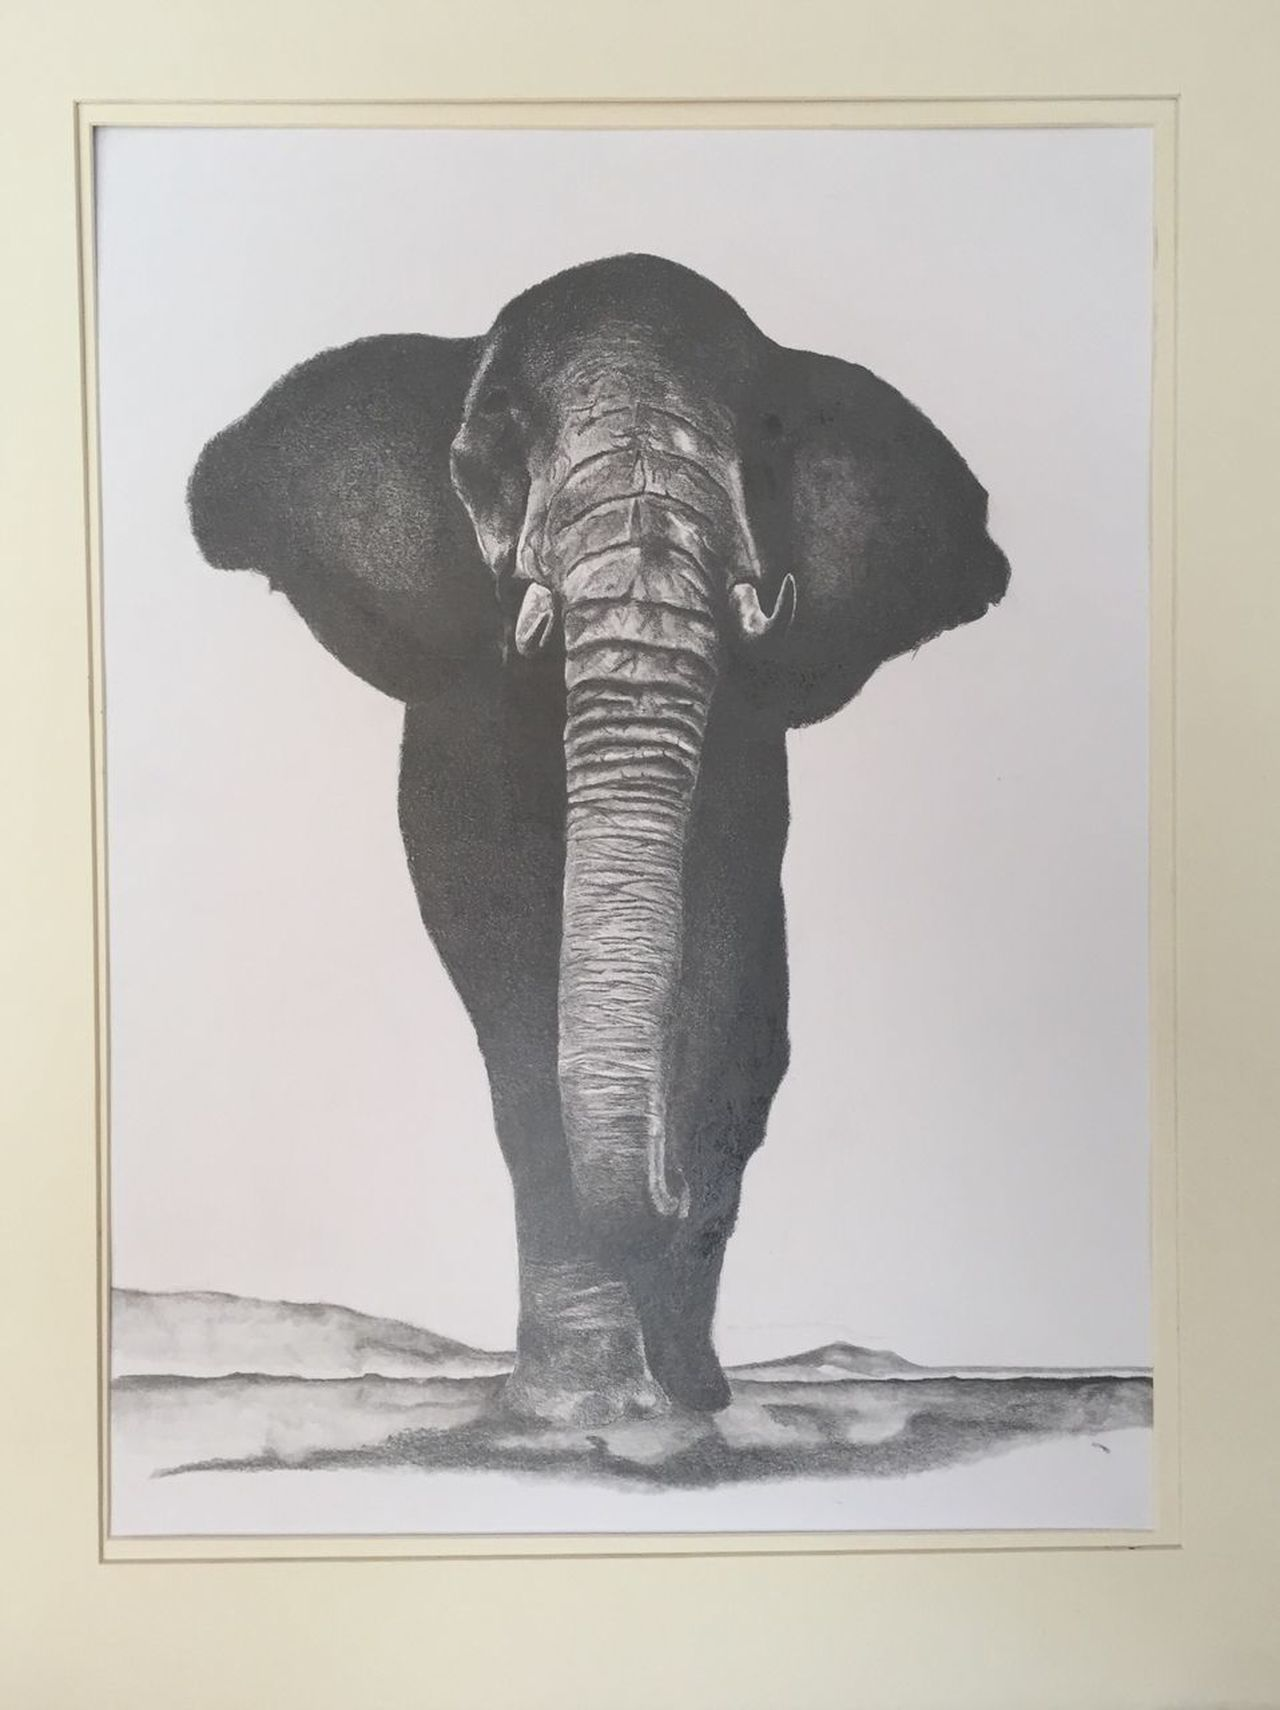 Elephant One Animal White Background Drawing Artist Light And Shadow Art, Drawing, Creativity Pencil Drawing Pencil And Paper Pensil Draw Pencil Artist